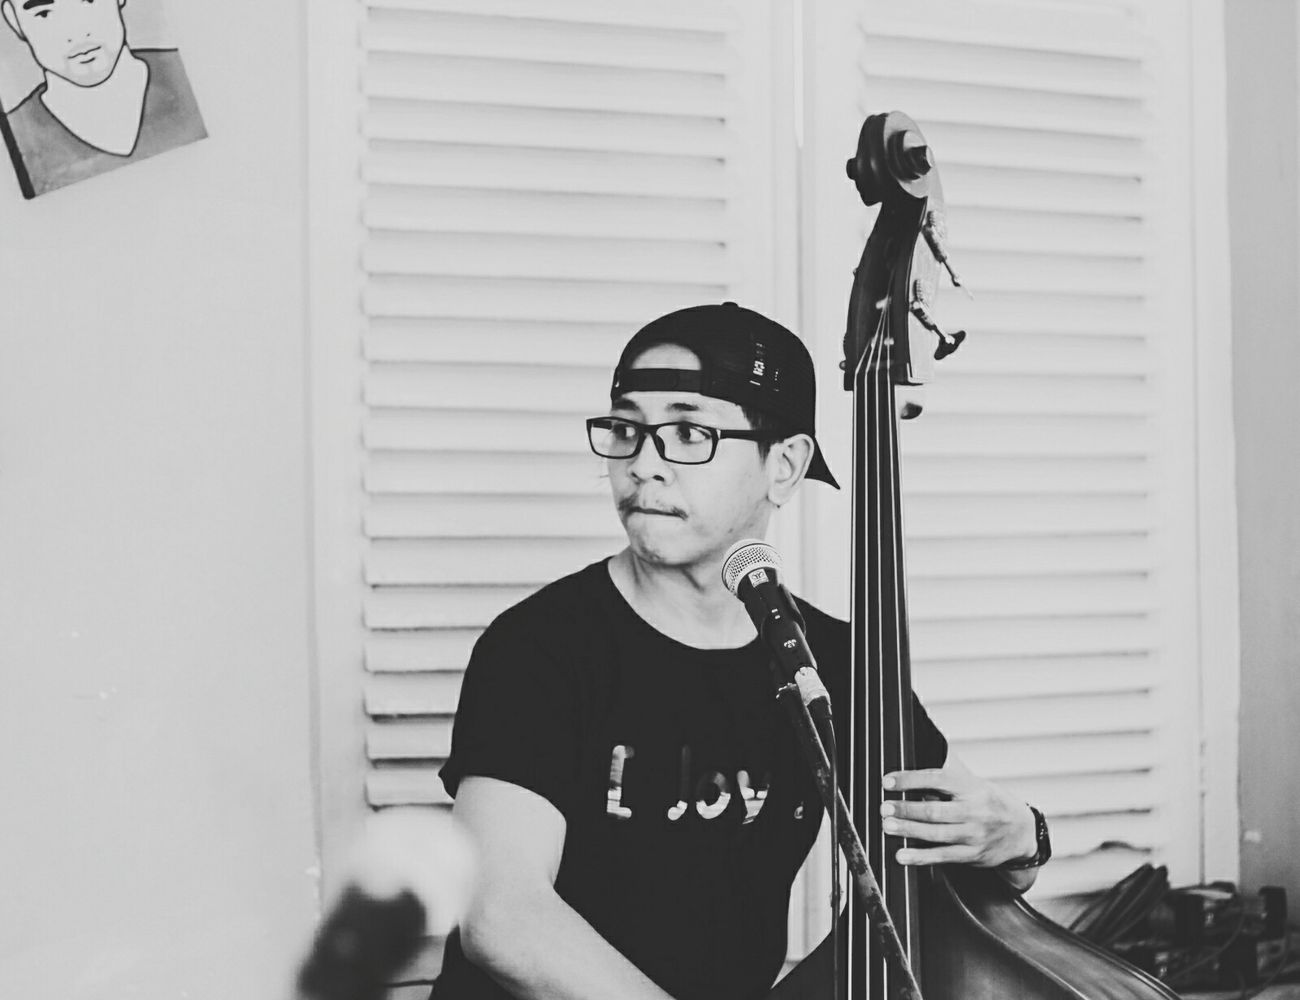 Taking Photos That's Me Musicphotography Blackandwhite Photography LiveMusic Monochrome Endorsement Joylabsclothing Self Portrait